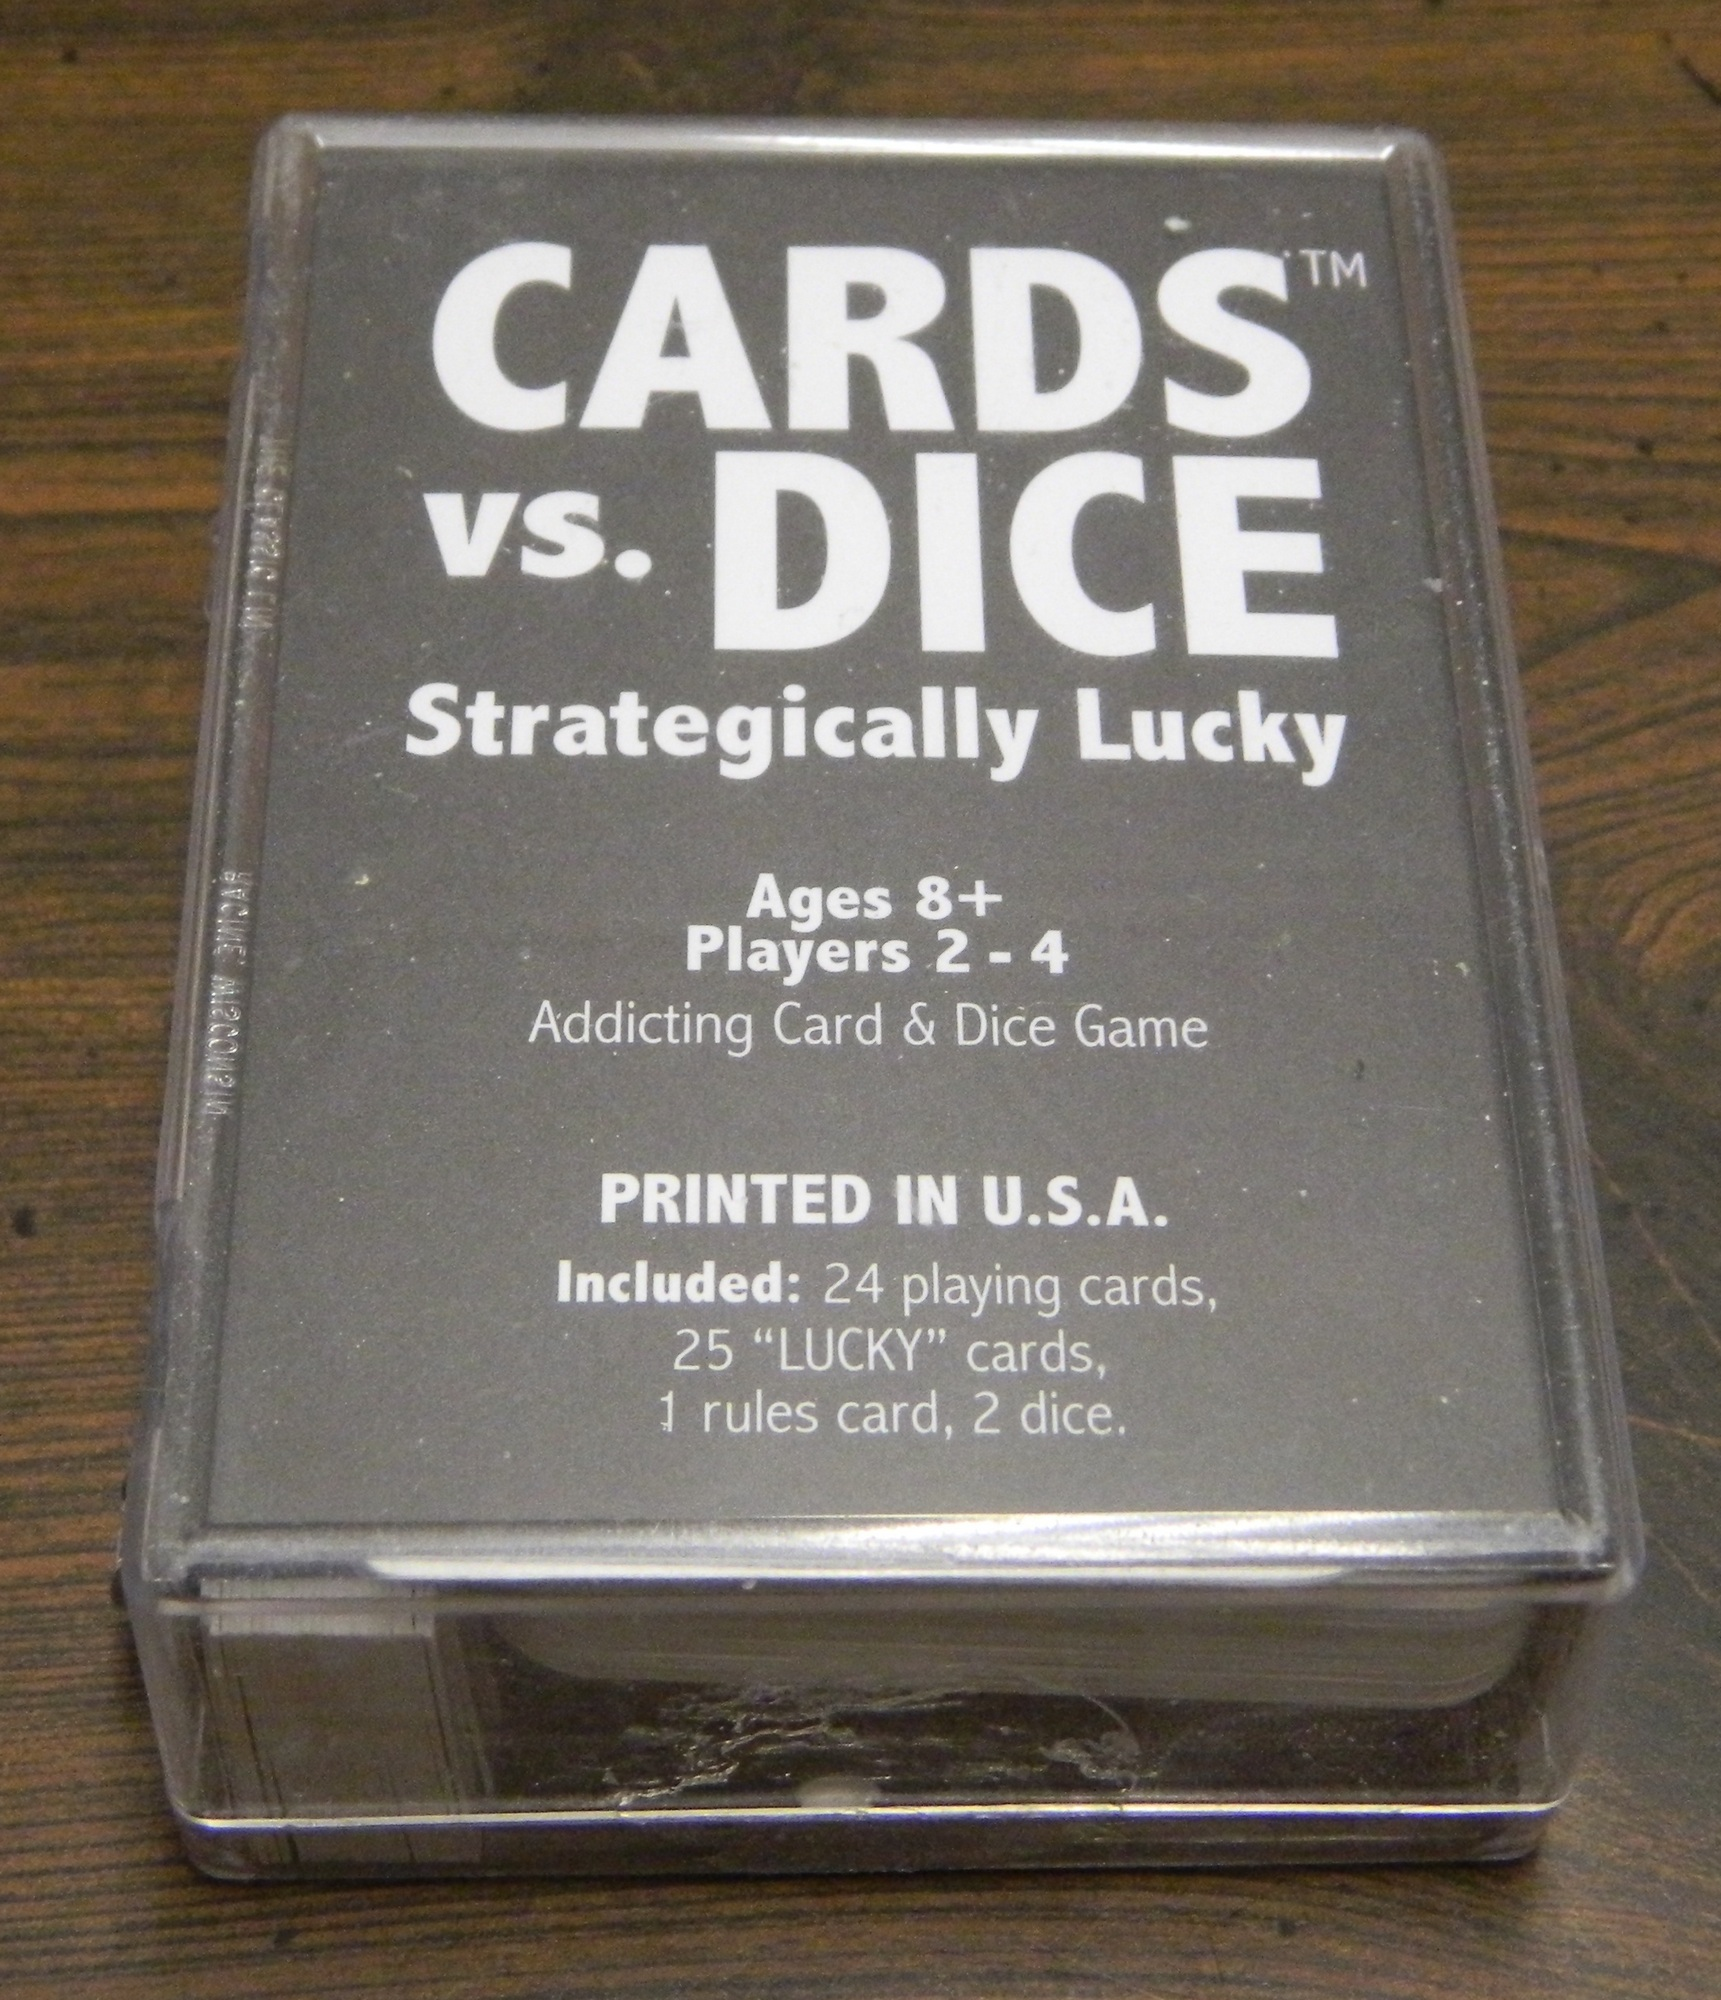 Box for Cards Vs Dice